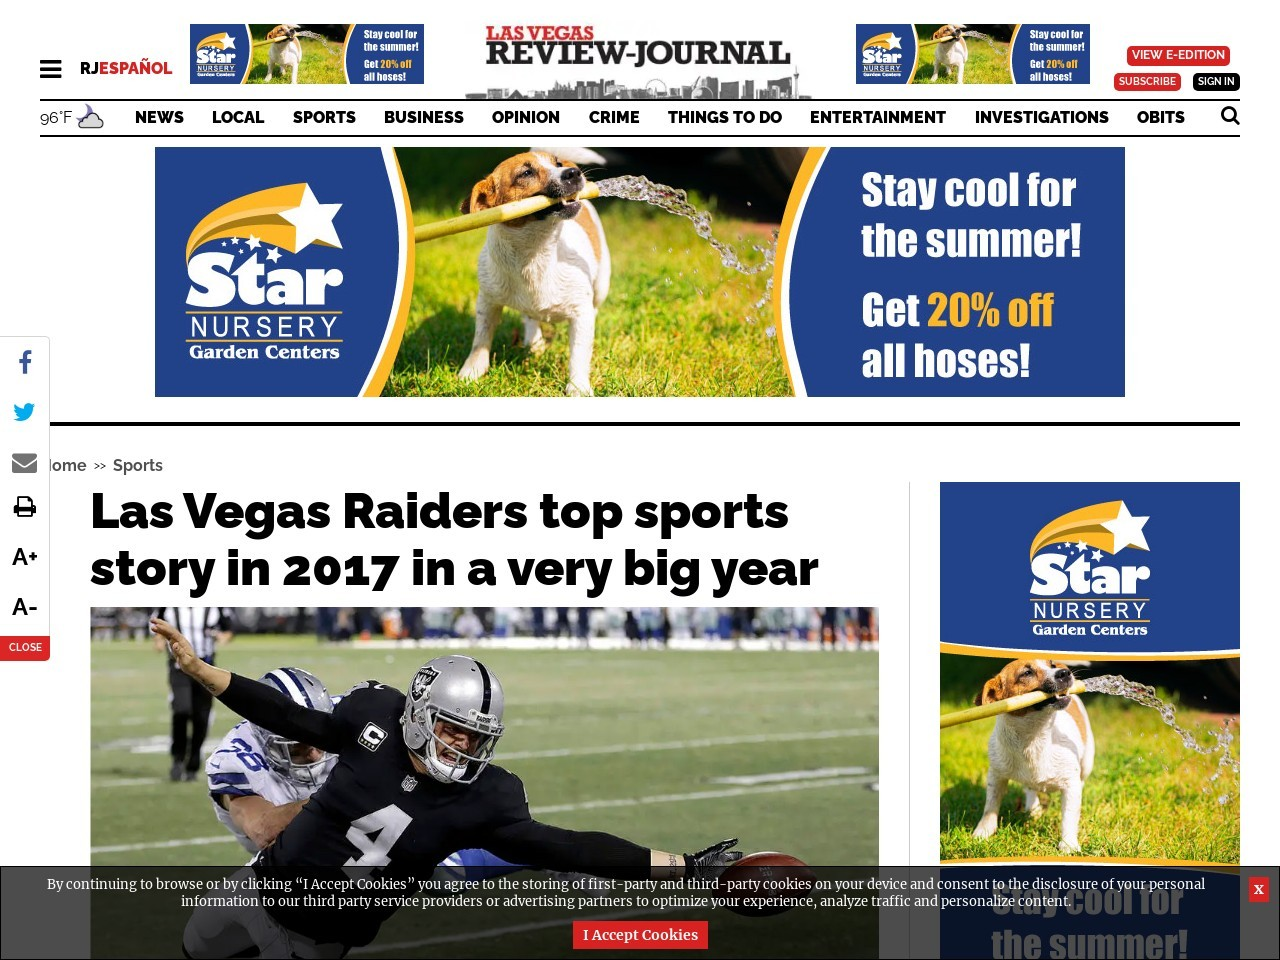 Las Vegas Raiders top sports story in 2017 in a very big year